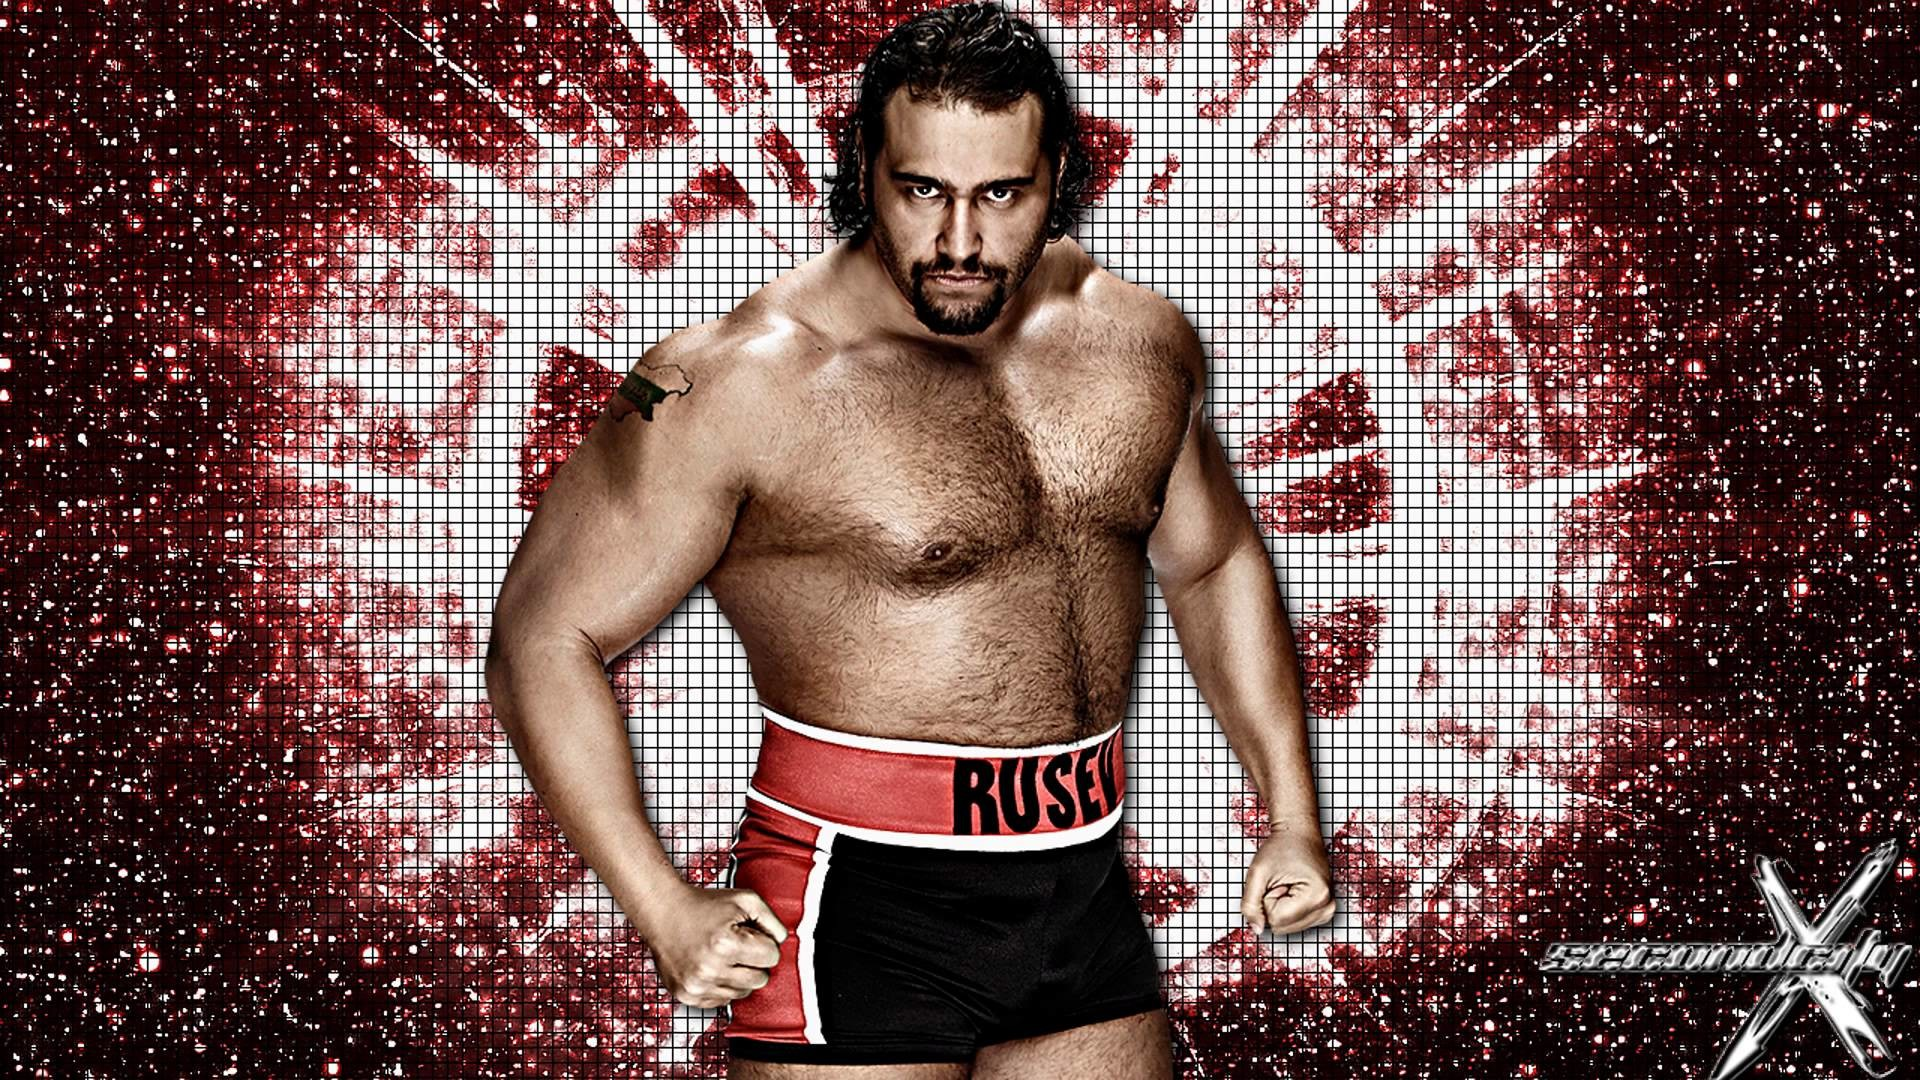 Res: 1920x1080, wwe superstars images Rusev HD wallpaper and background photos